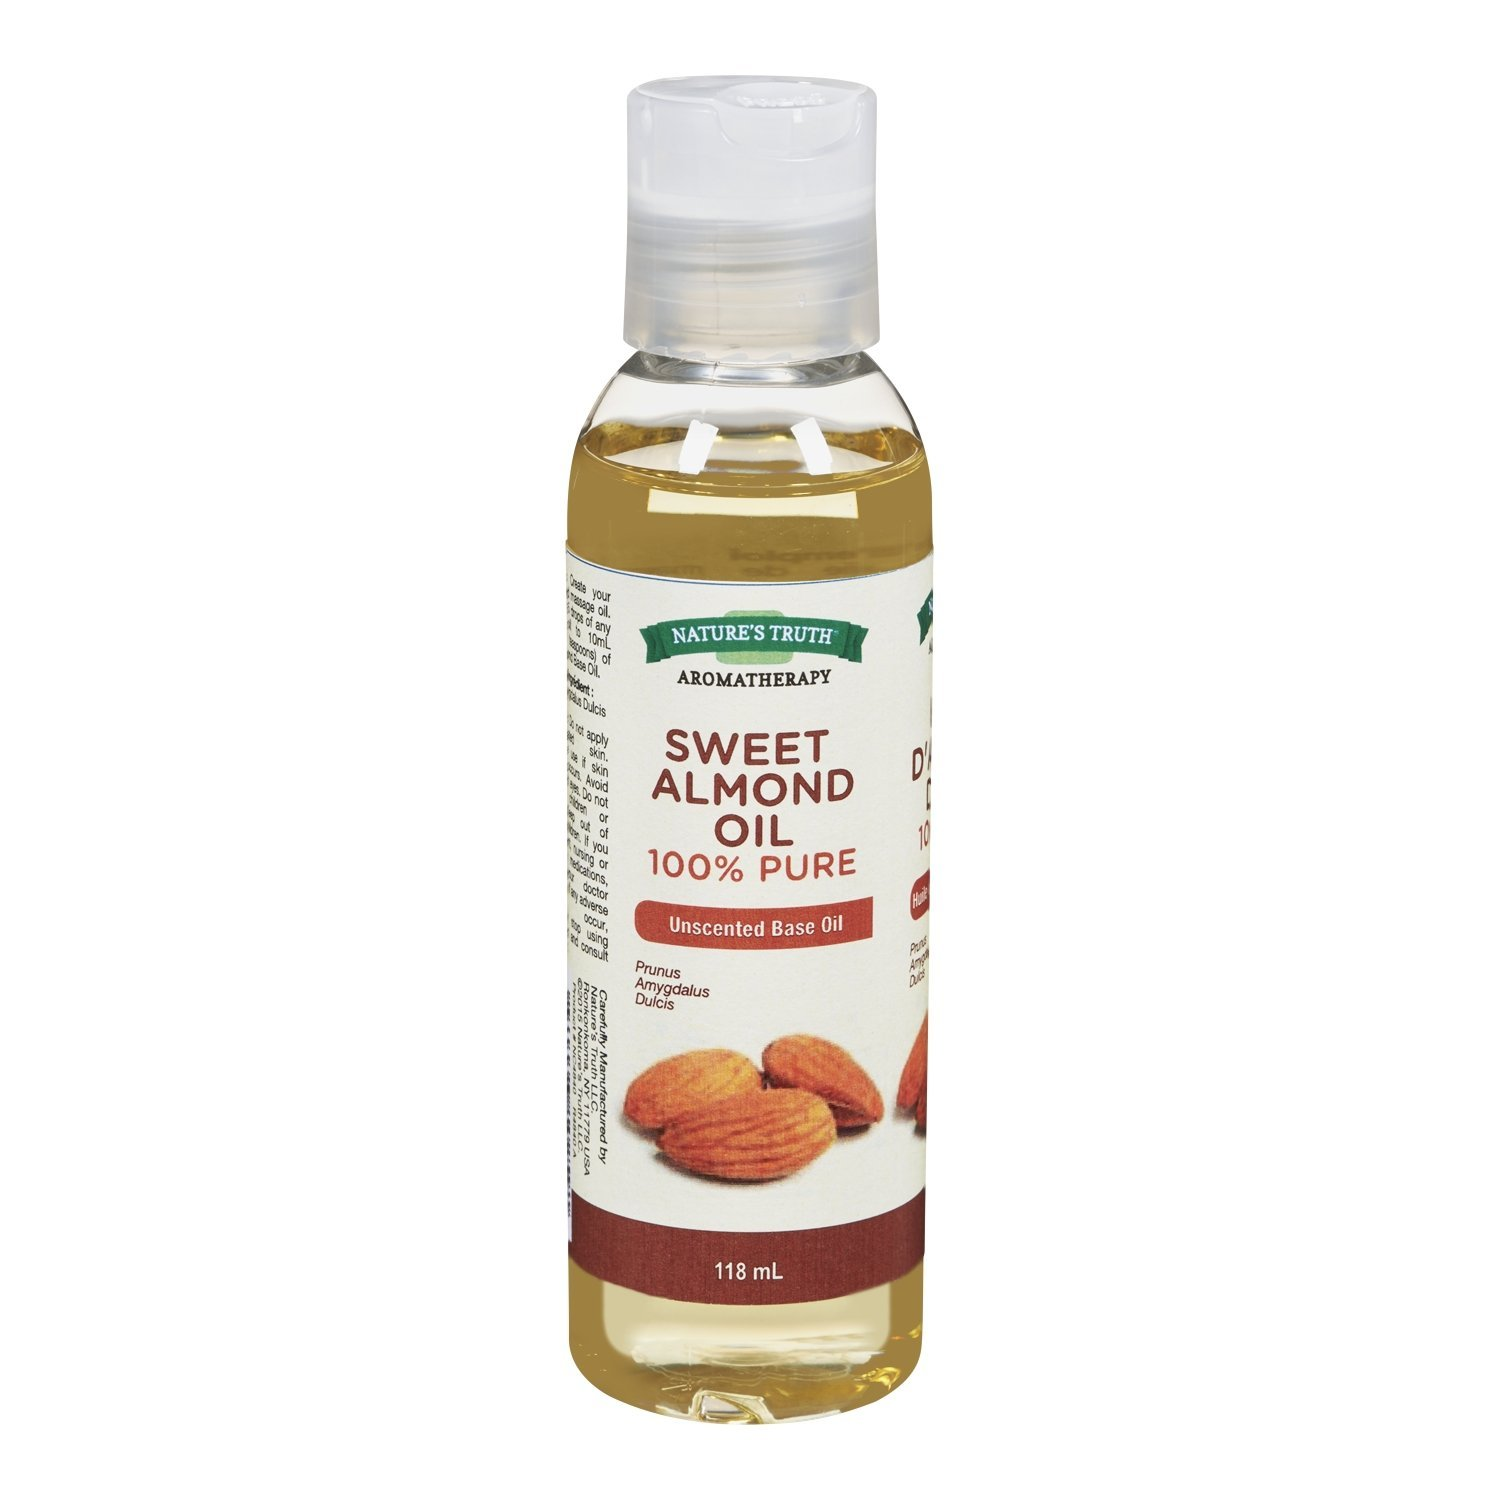 Nature's Truth Essential Oil - Sweet Almond Oil (Base Oil) 1 Count Nature's Truth